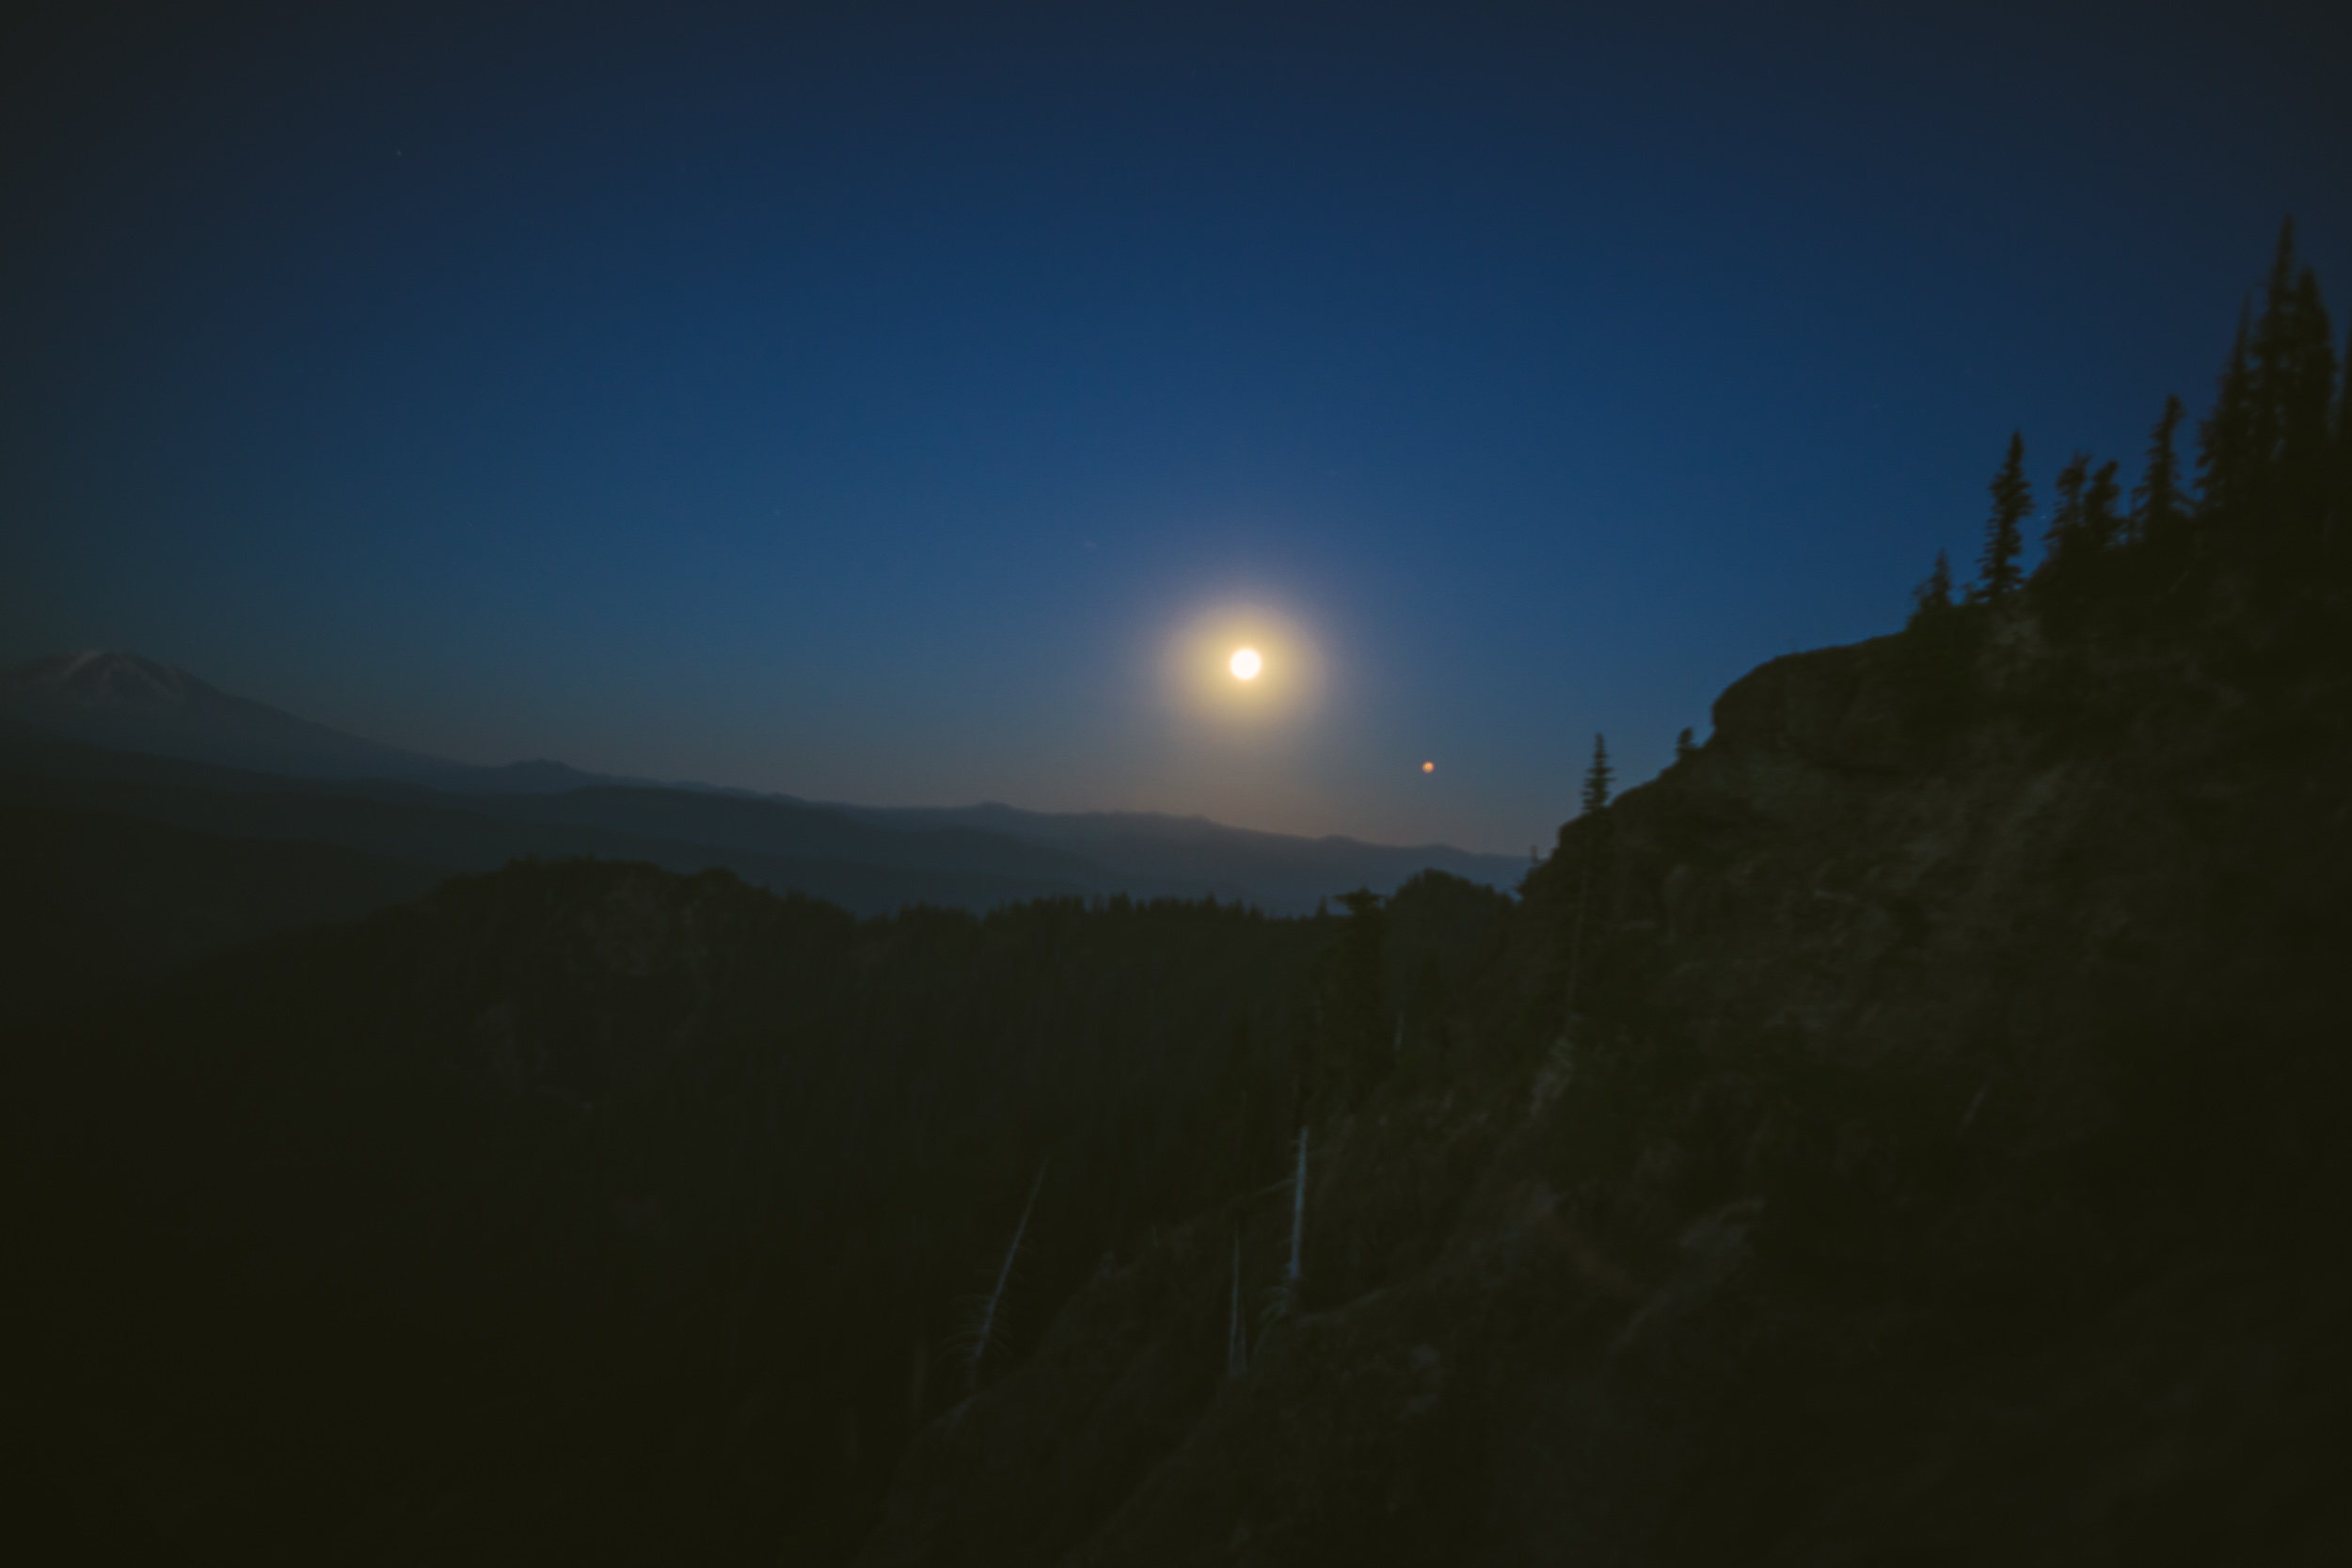 Full_Moon_Mt_St_Helens_58.jpg